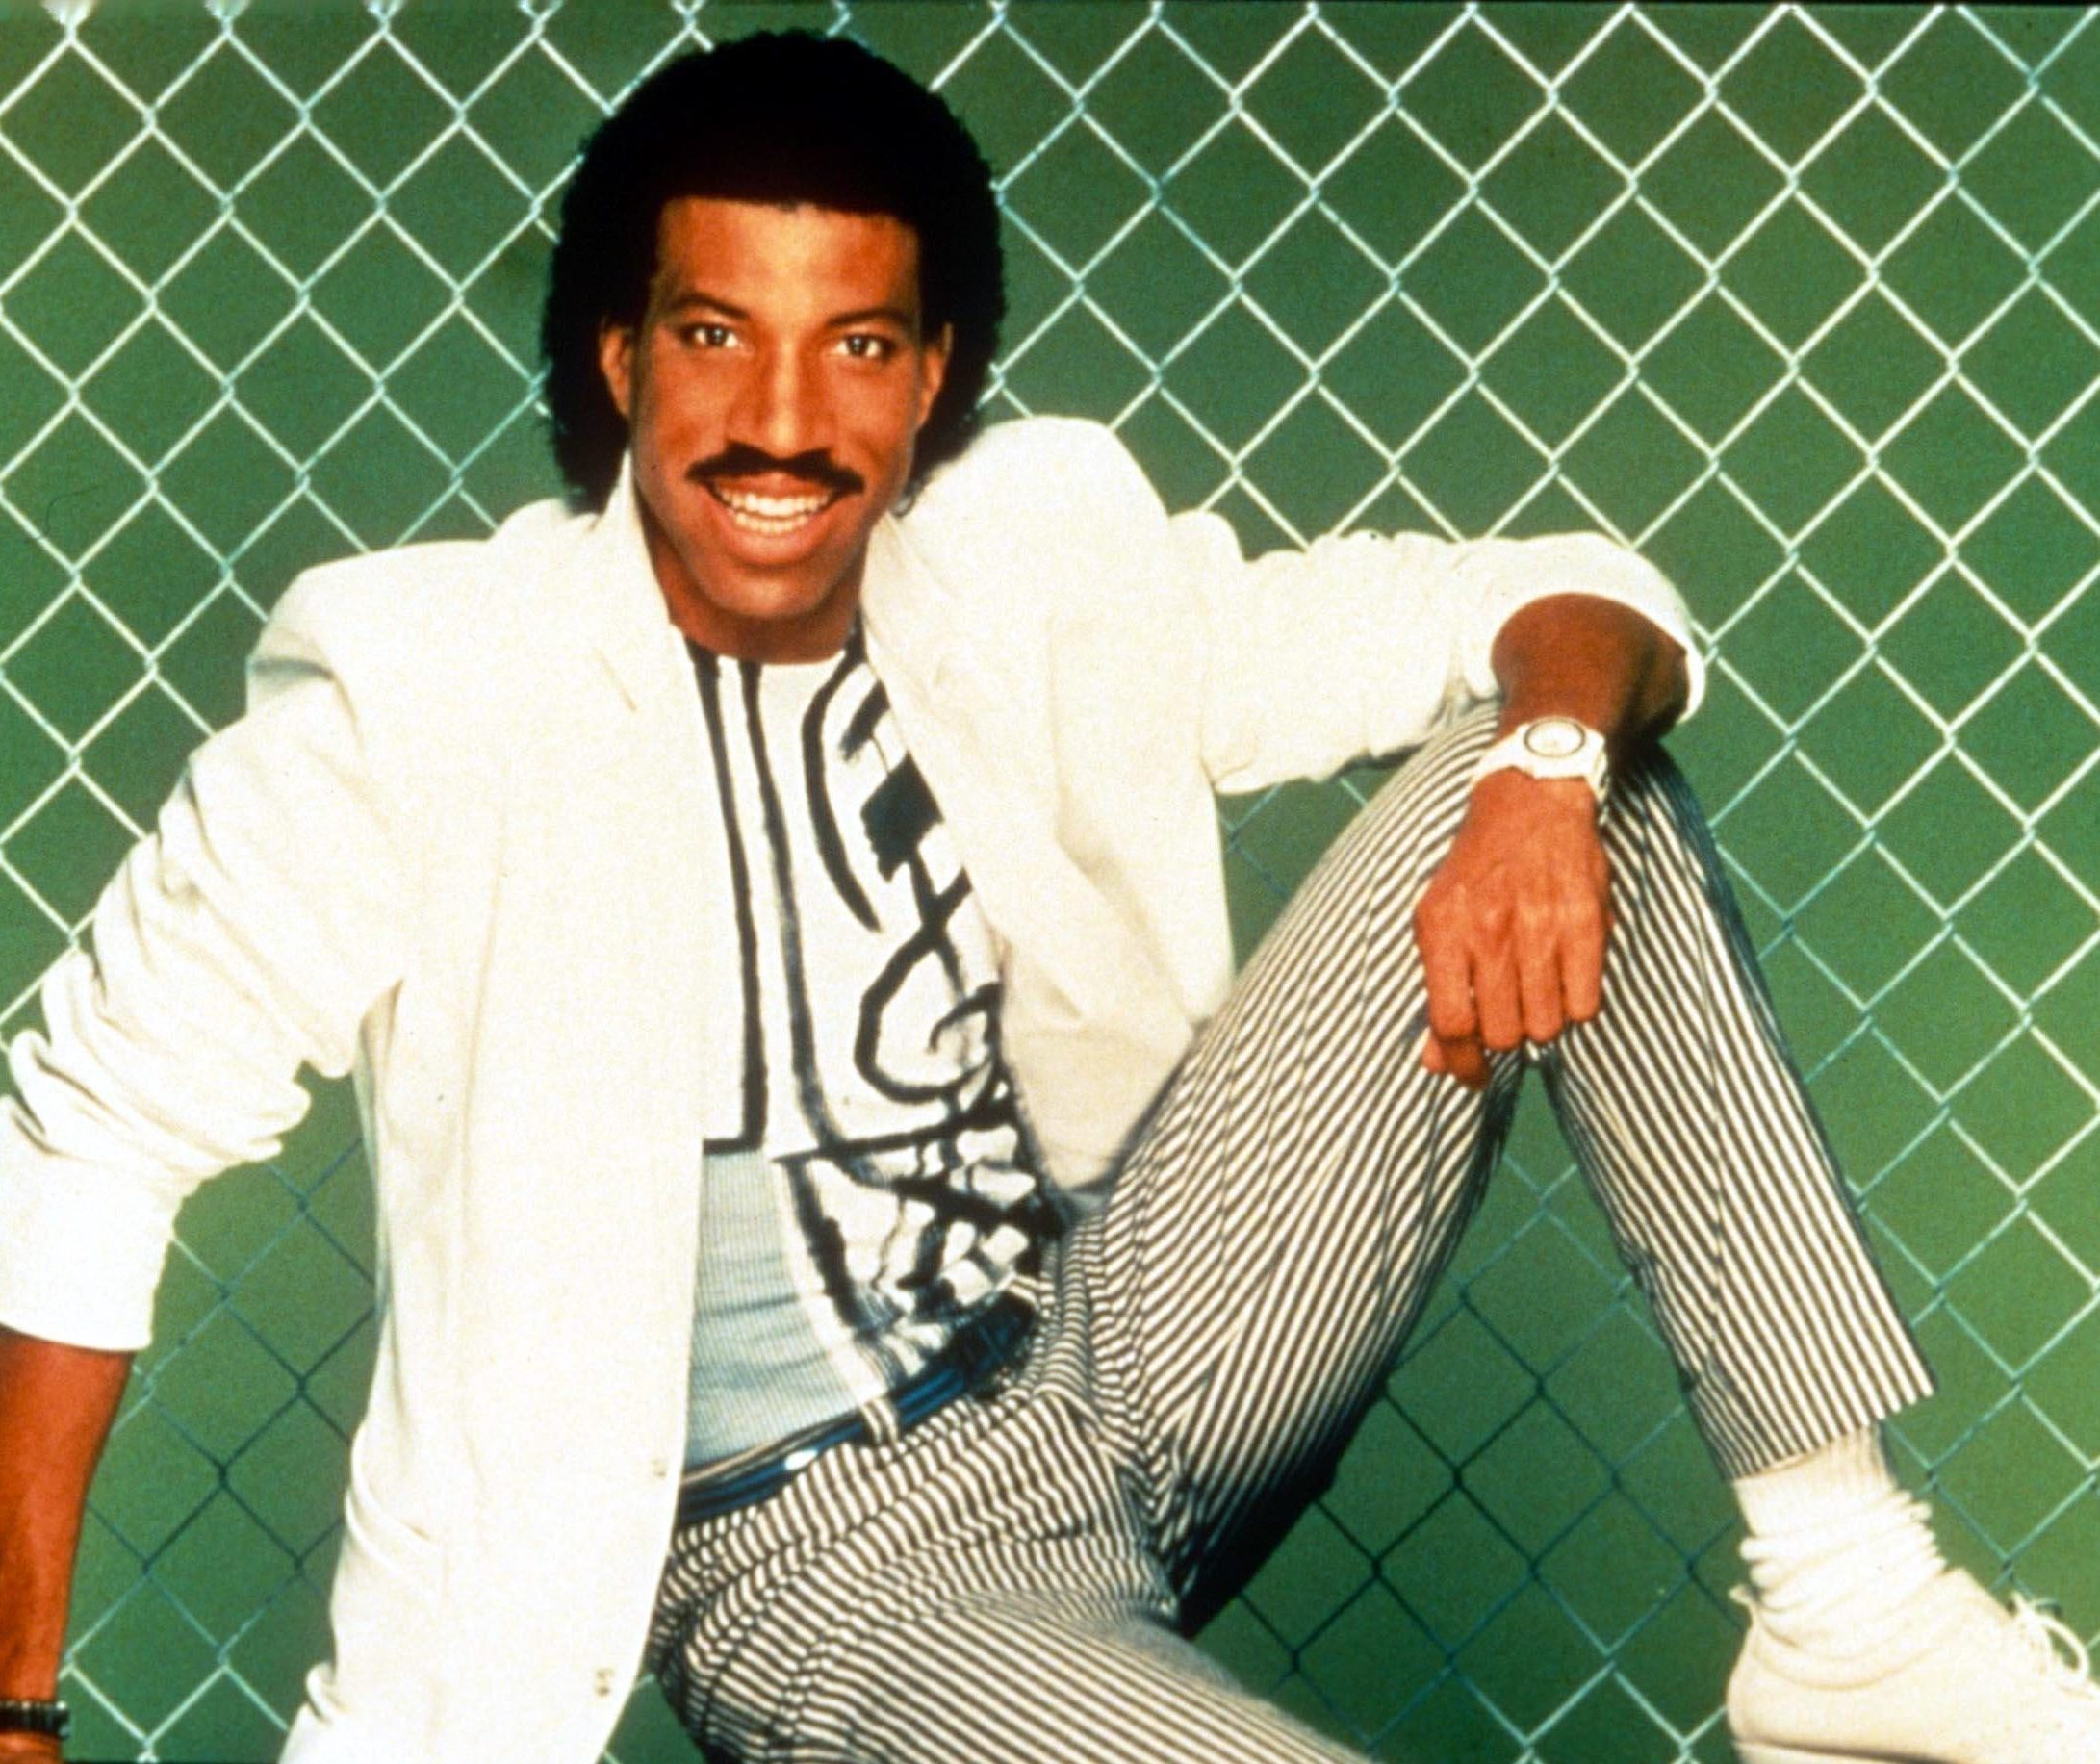 nintchdbpict000410008779 e1609863923627 10 Things You Probably Didn't Know About Lionel Richie